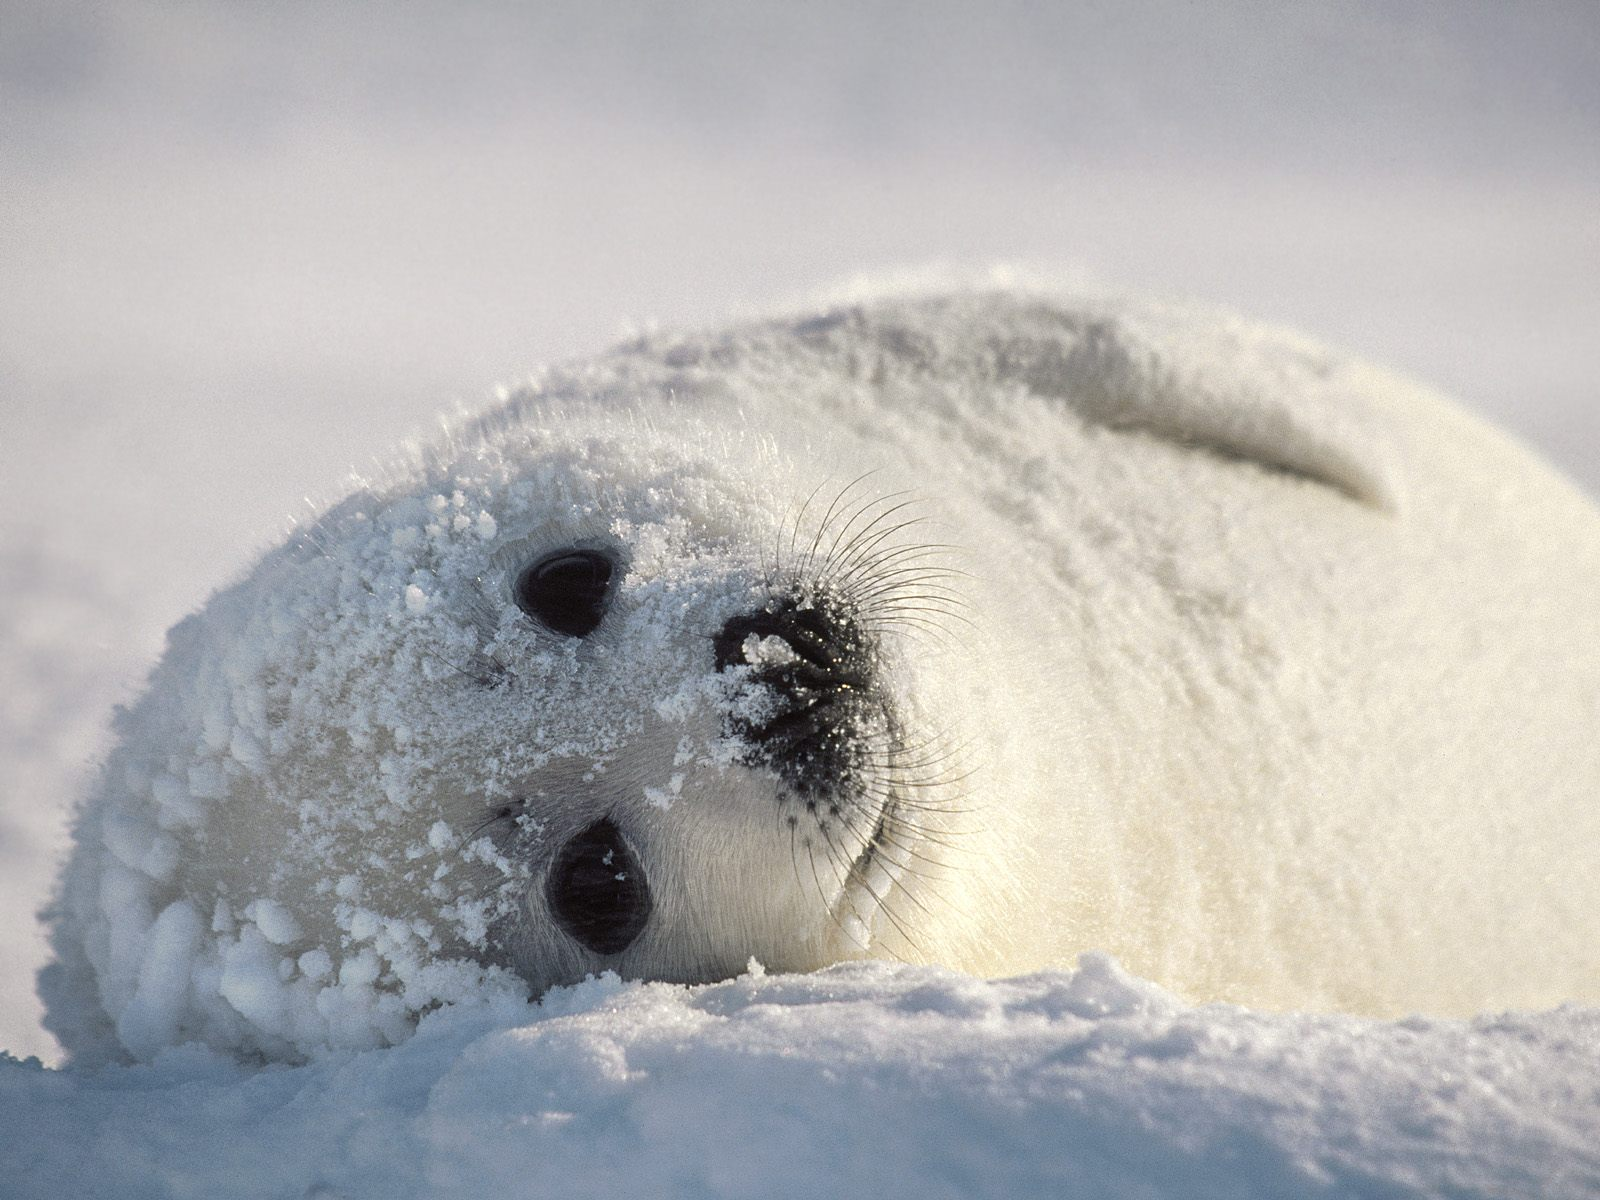 Harp Seal | Cute Animal Interesting Facts & Images